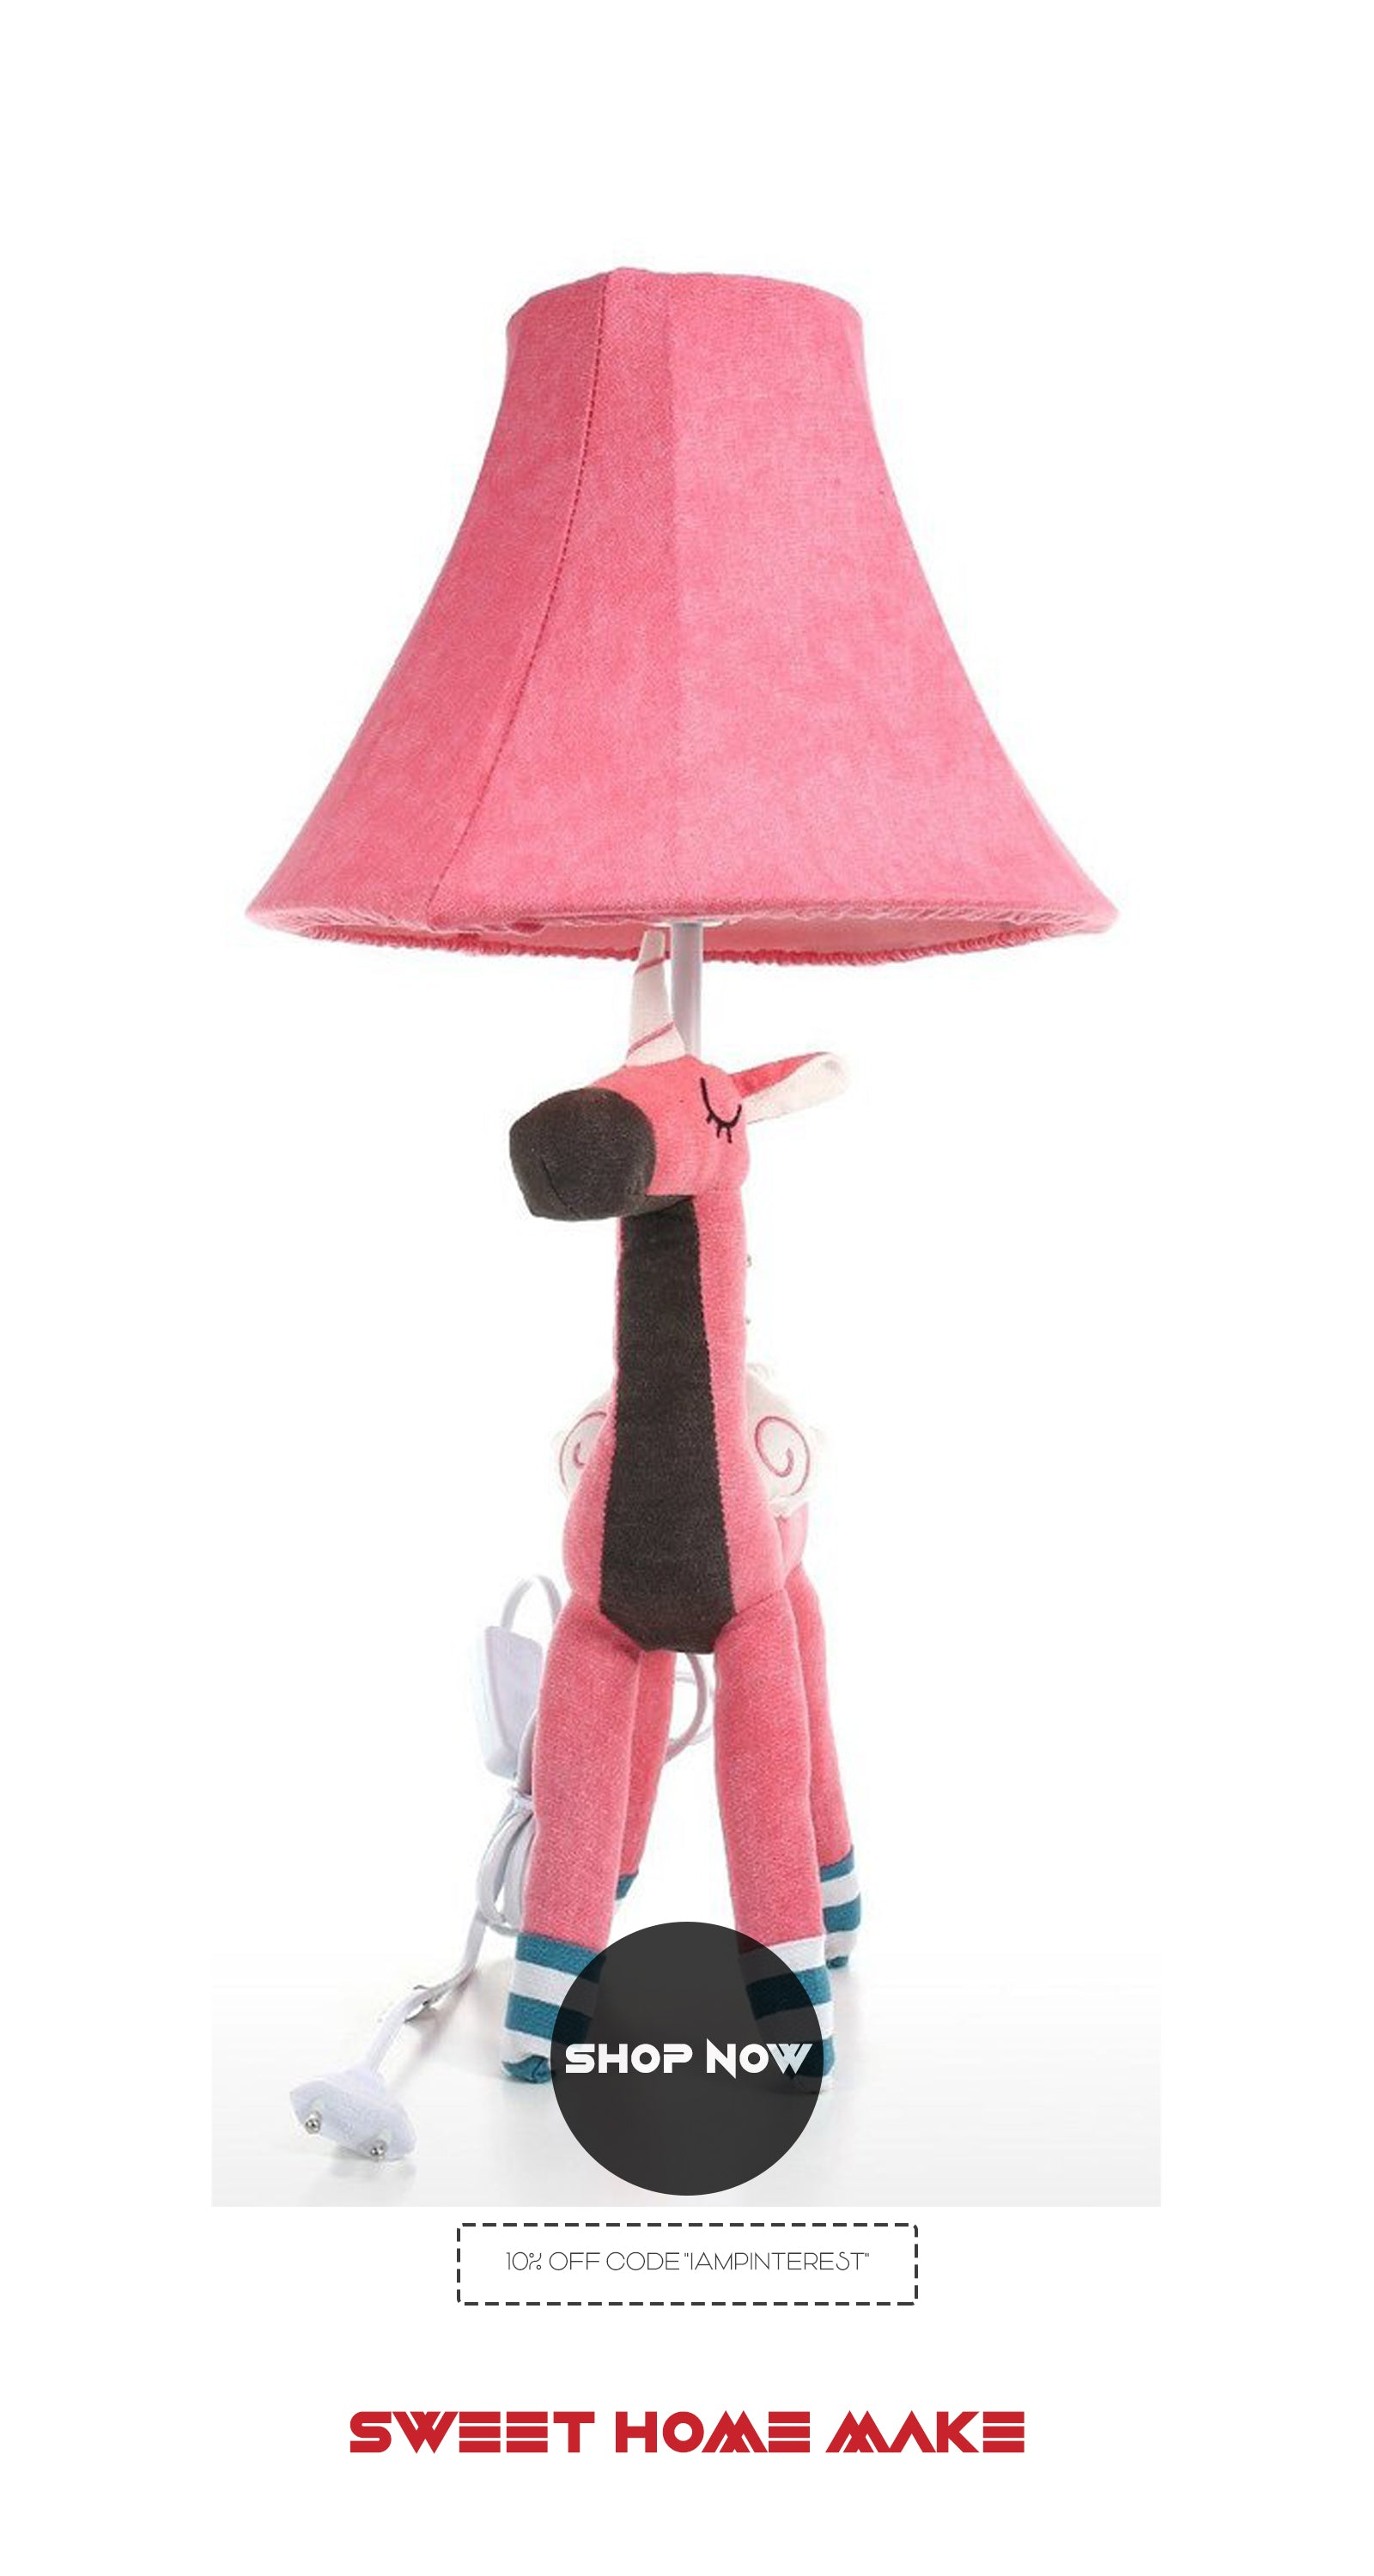 Unicorn Toy with Nightstand Bedside Pink Lamp